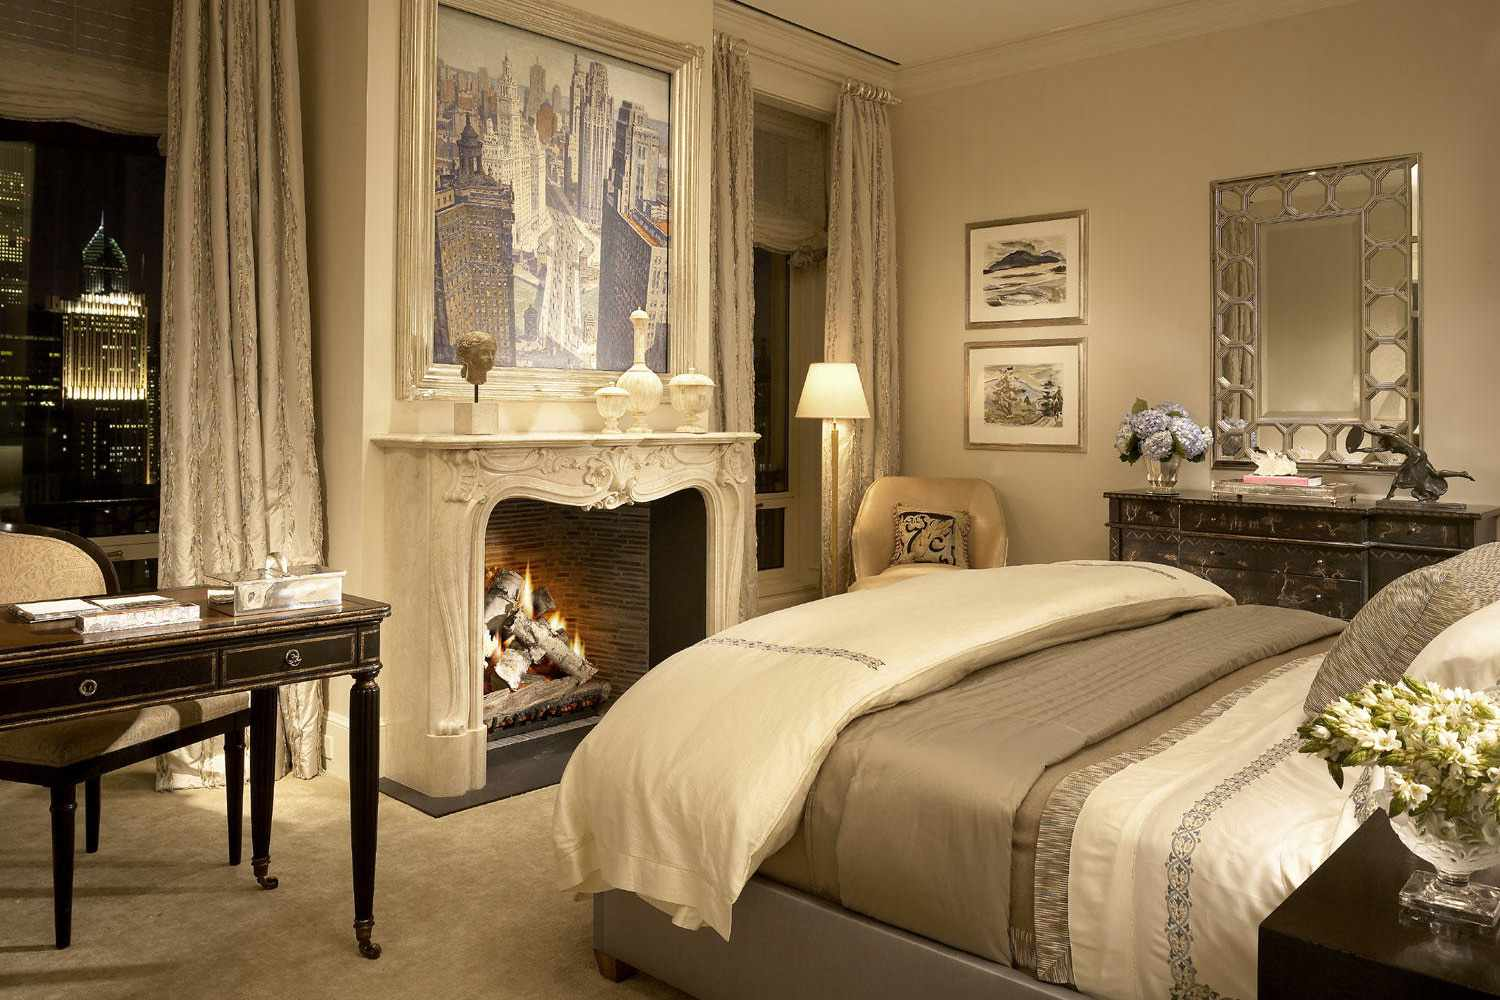 What is the romantic decorating style